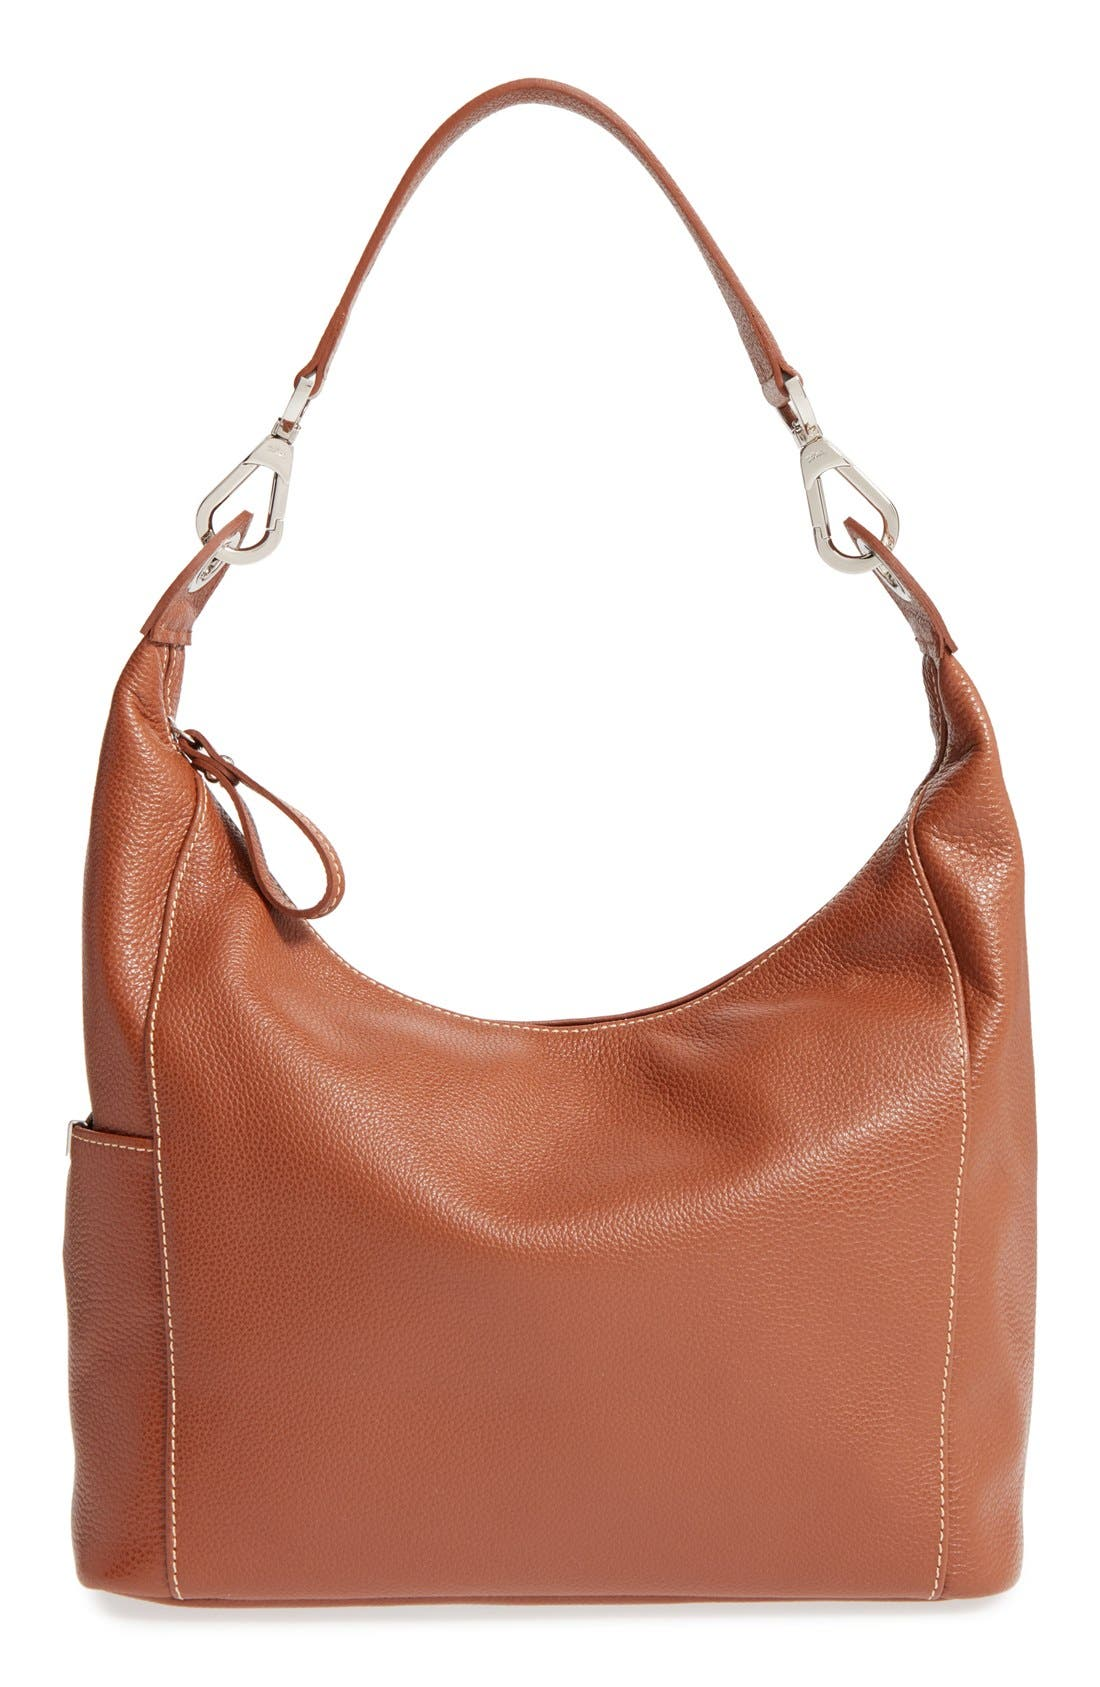 Alternate Image 1 Selected - Longchamp 'Le Foulonne' Leather Hobo Bag